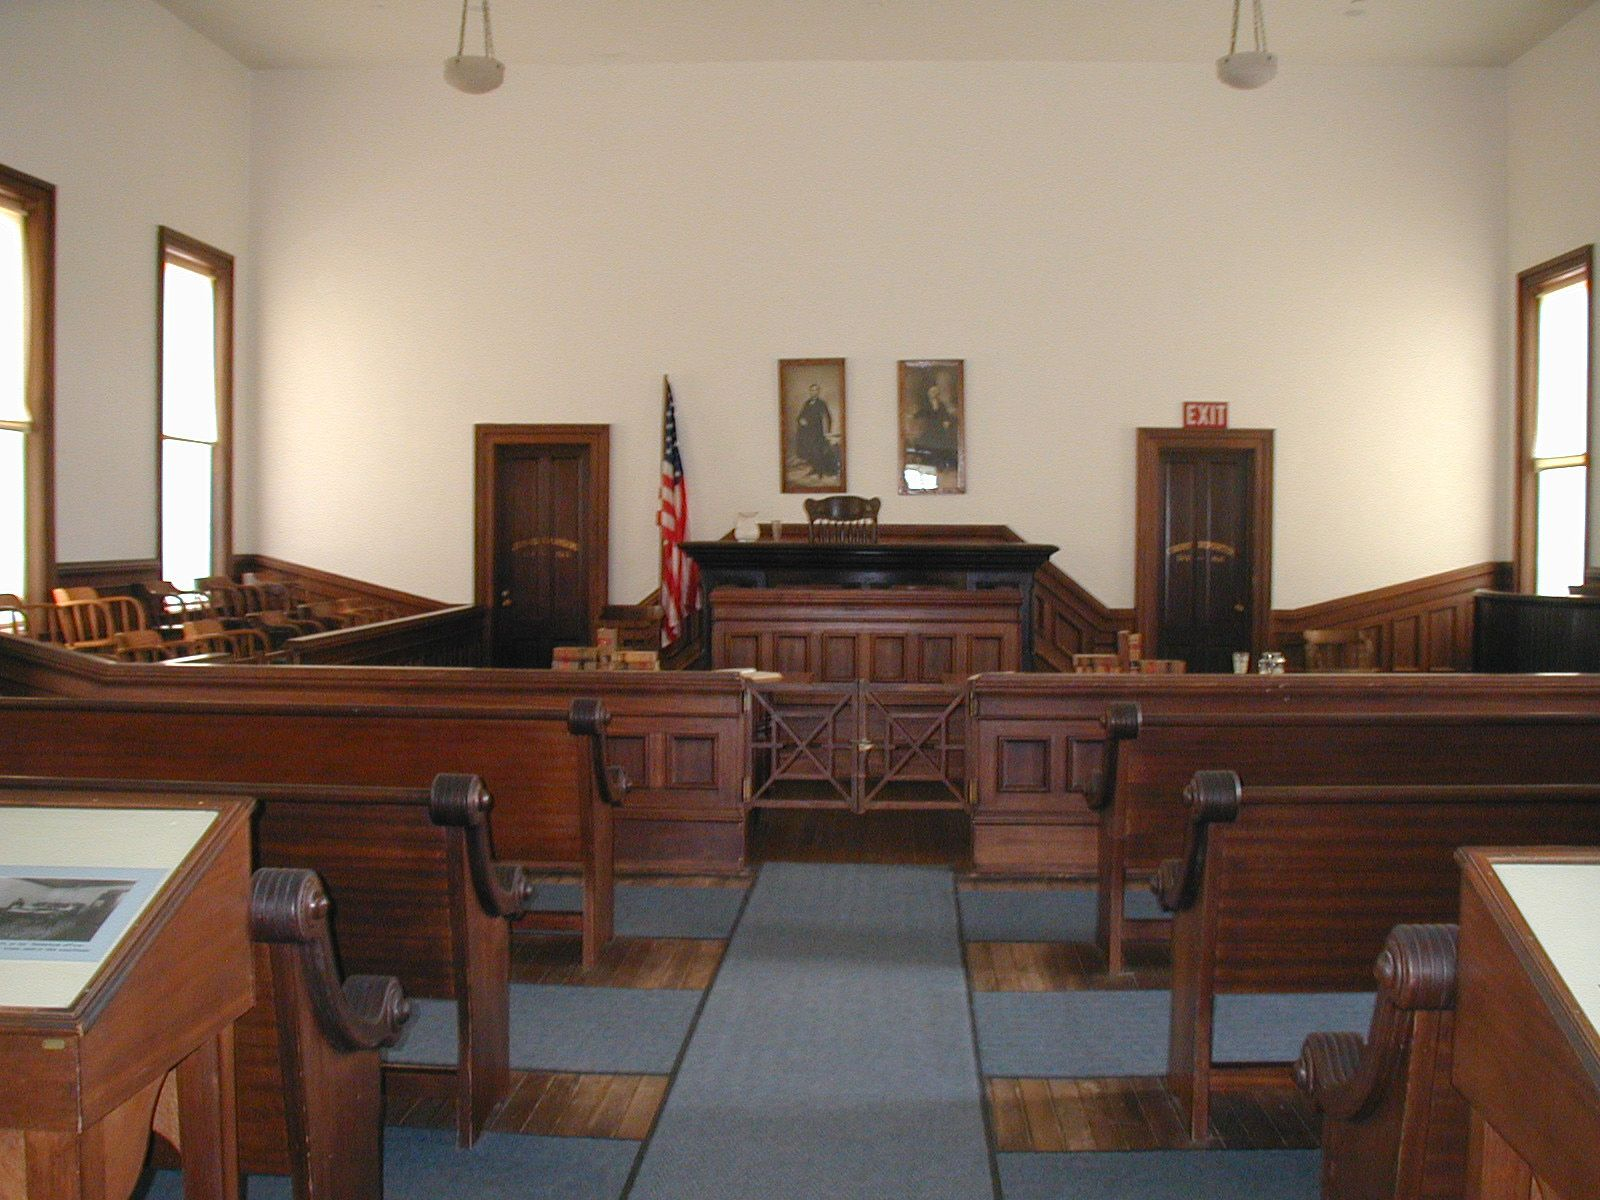 Inside Cochise County Courthouse in Tombstone, Arizona